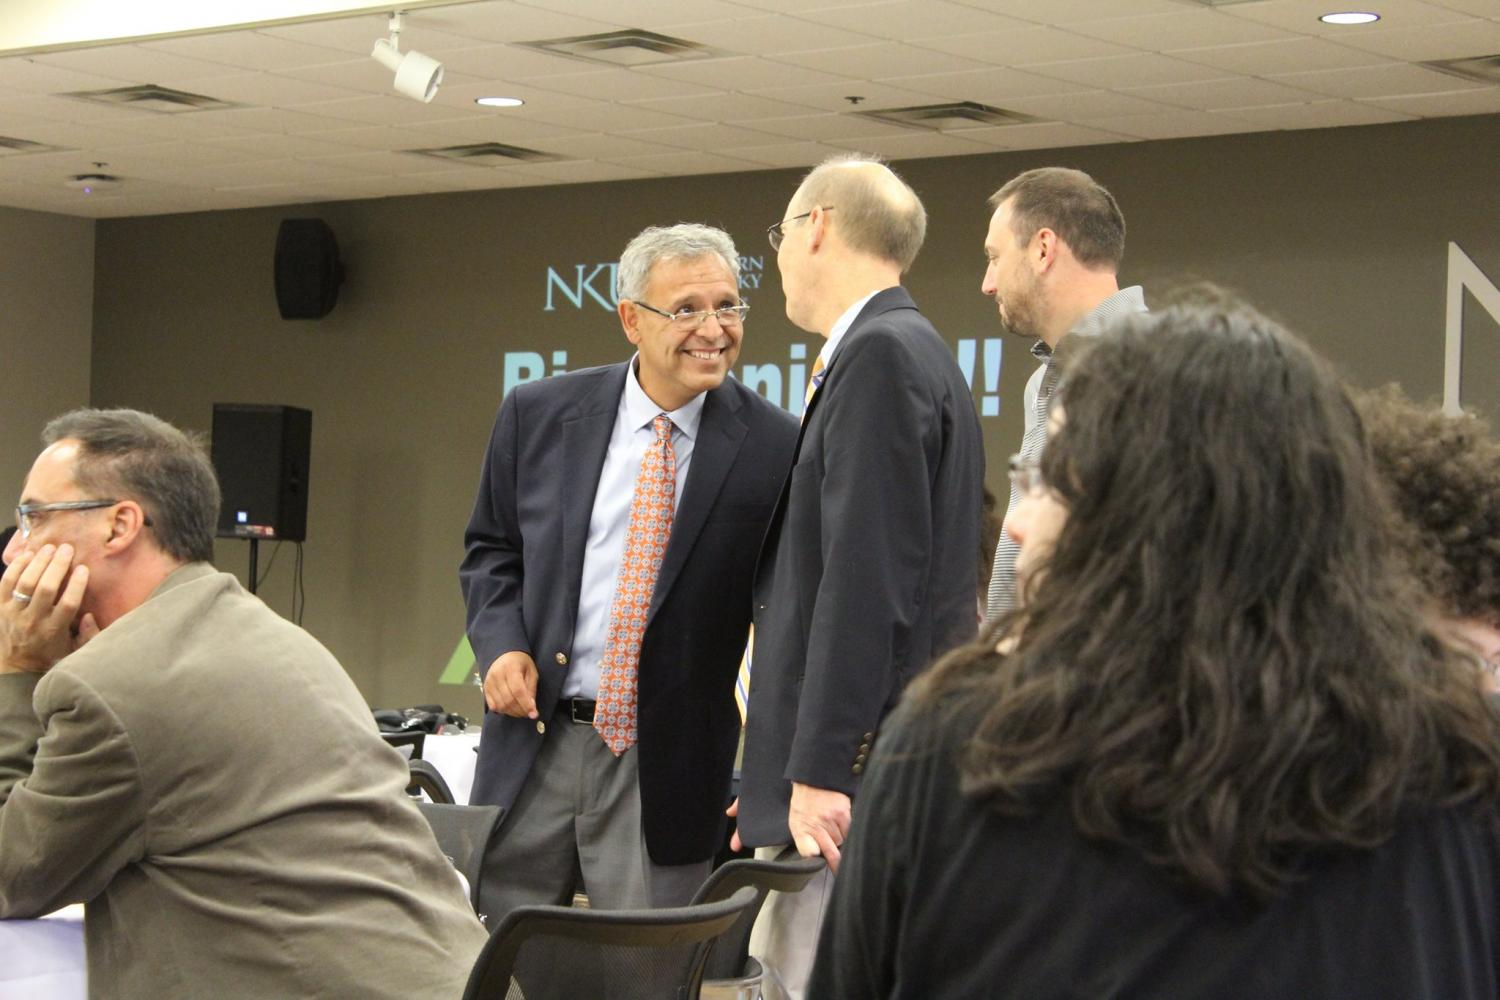 The director of Latino programs and Services mingled with attendees.